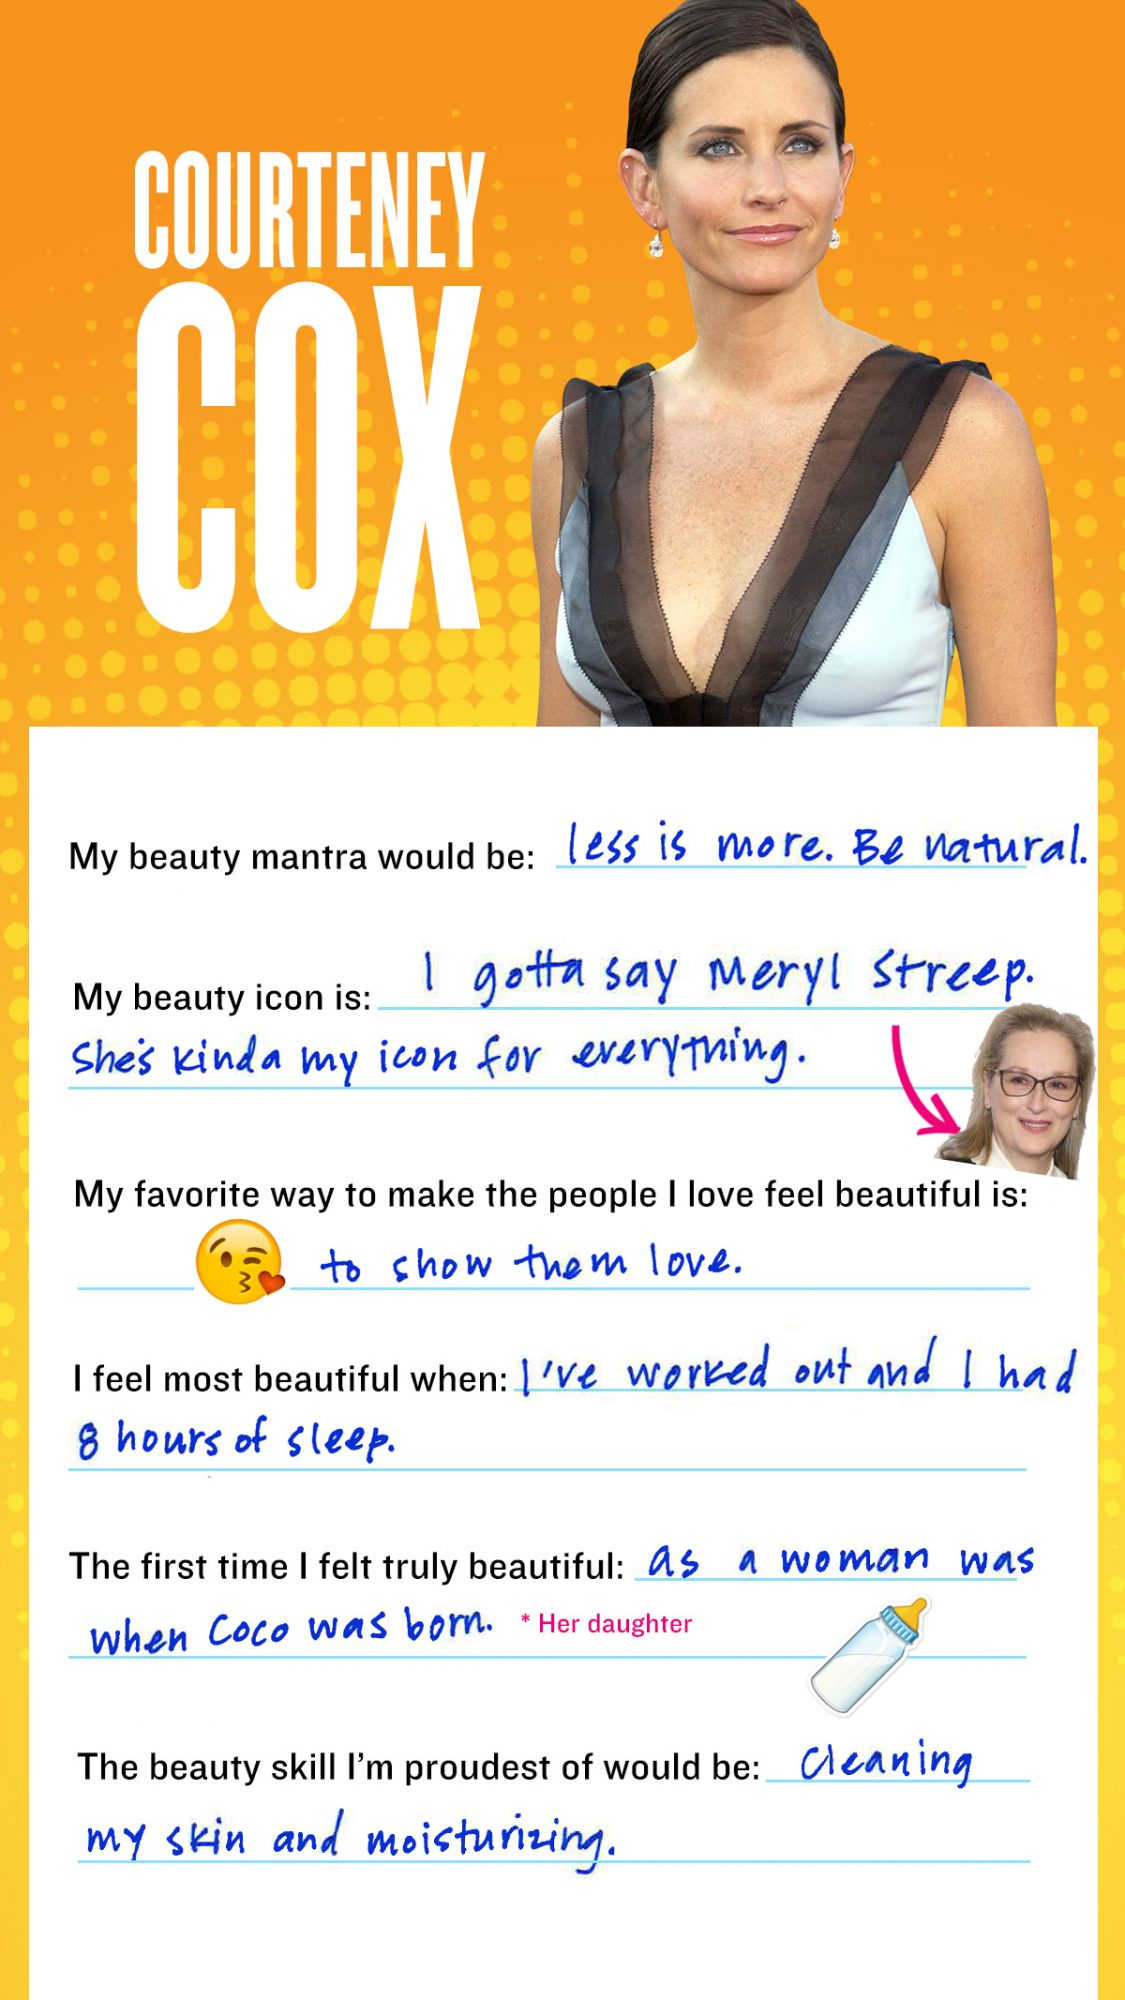 beautyquestionaire-courtney